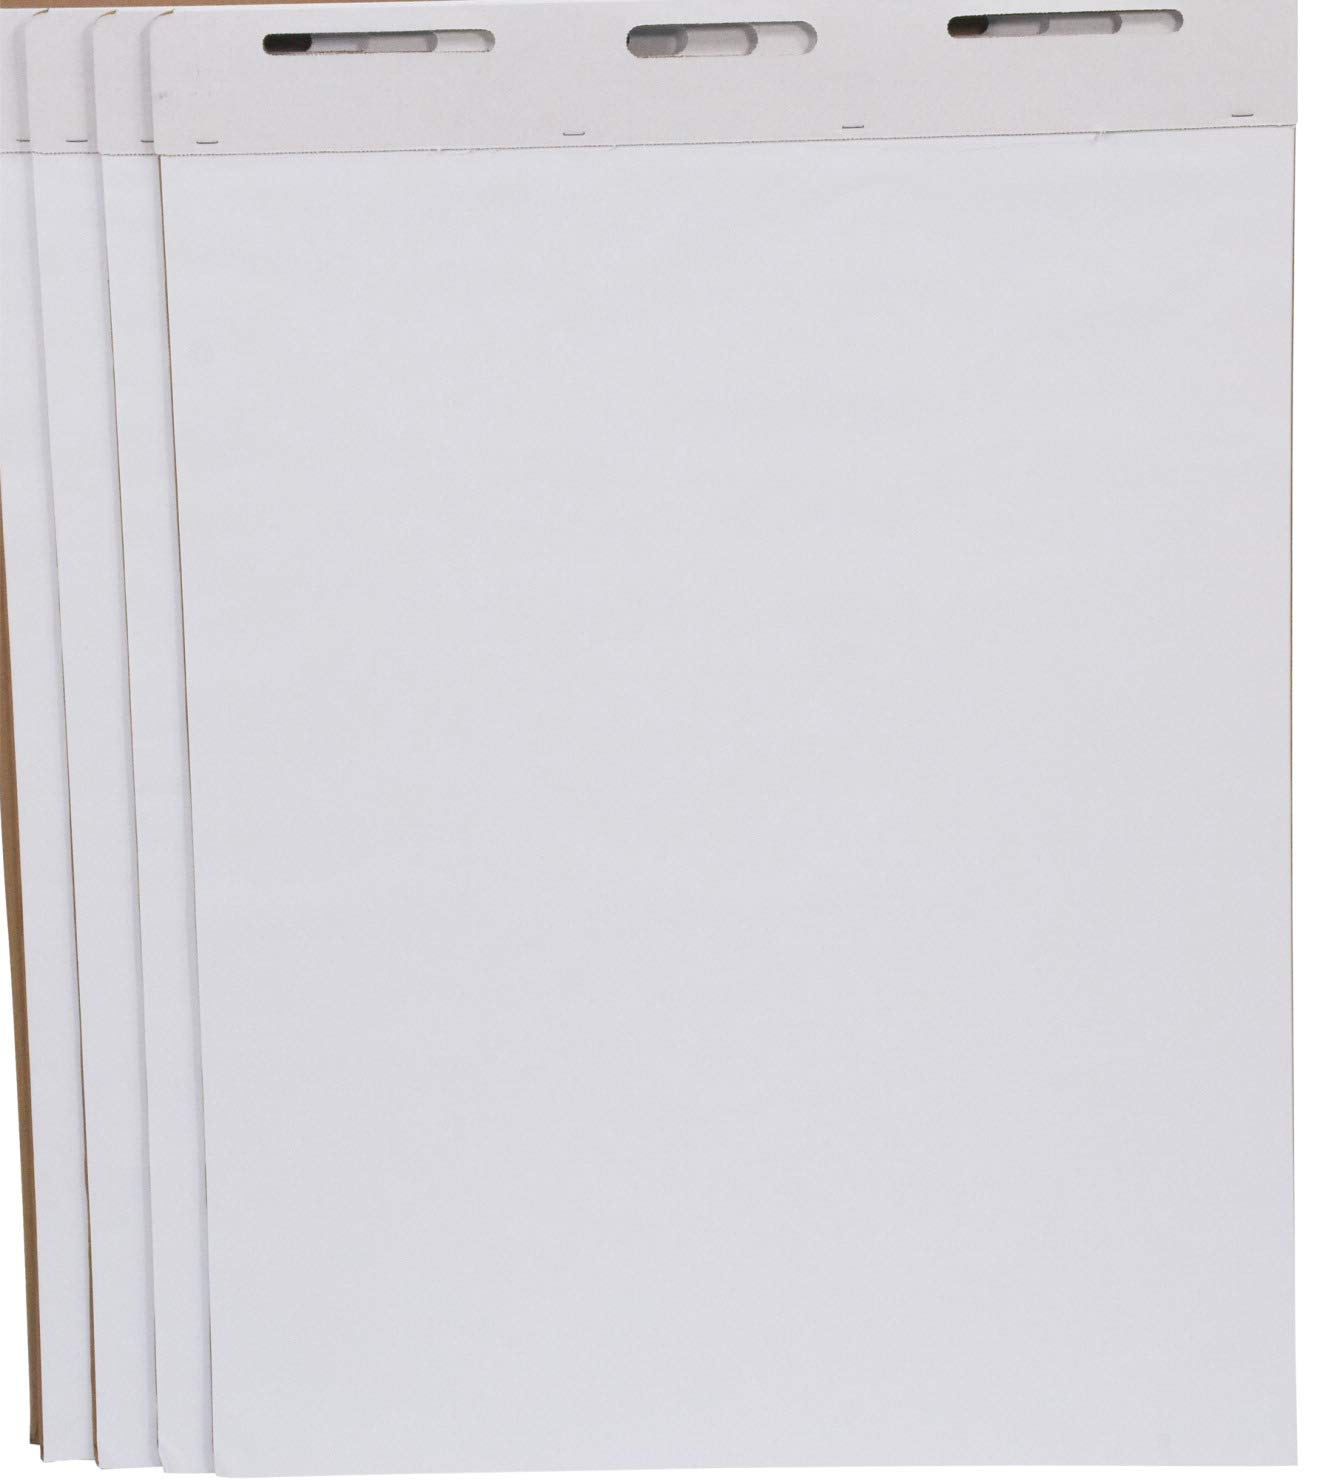 School Smart Unruled Easel Pads, 34 x 27 in, 50 Sheets, White, Pack of 4